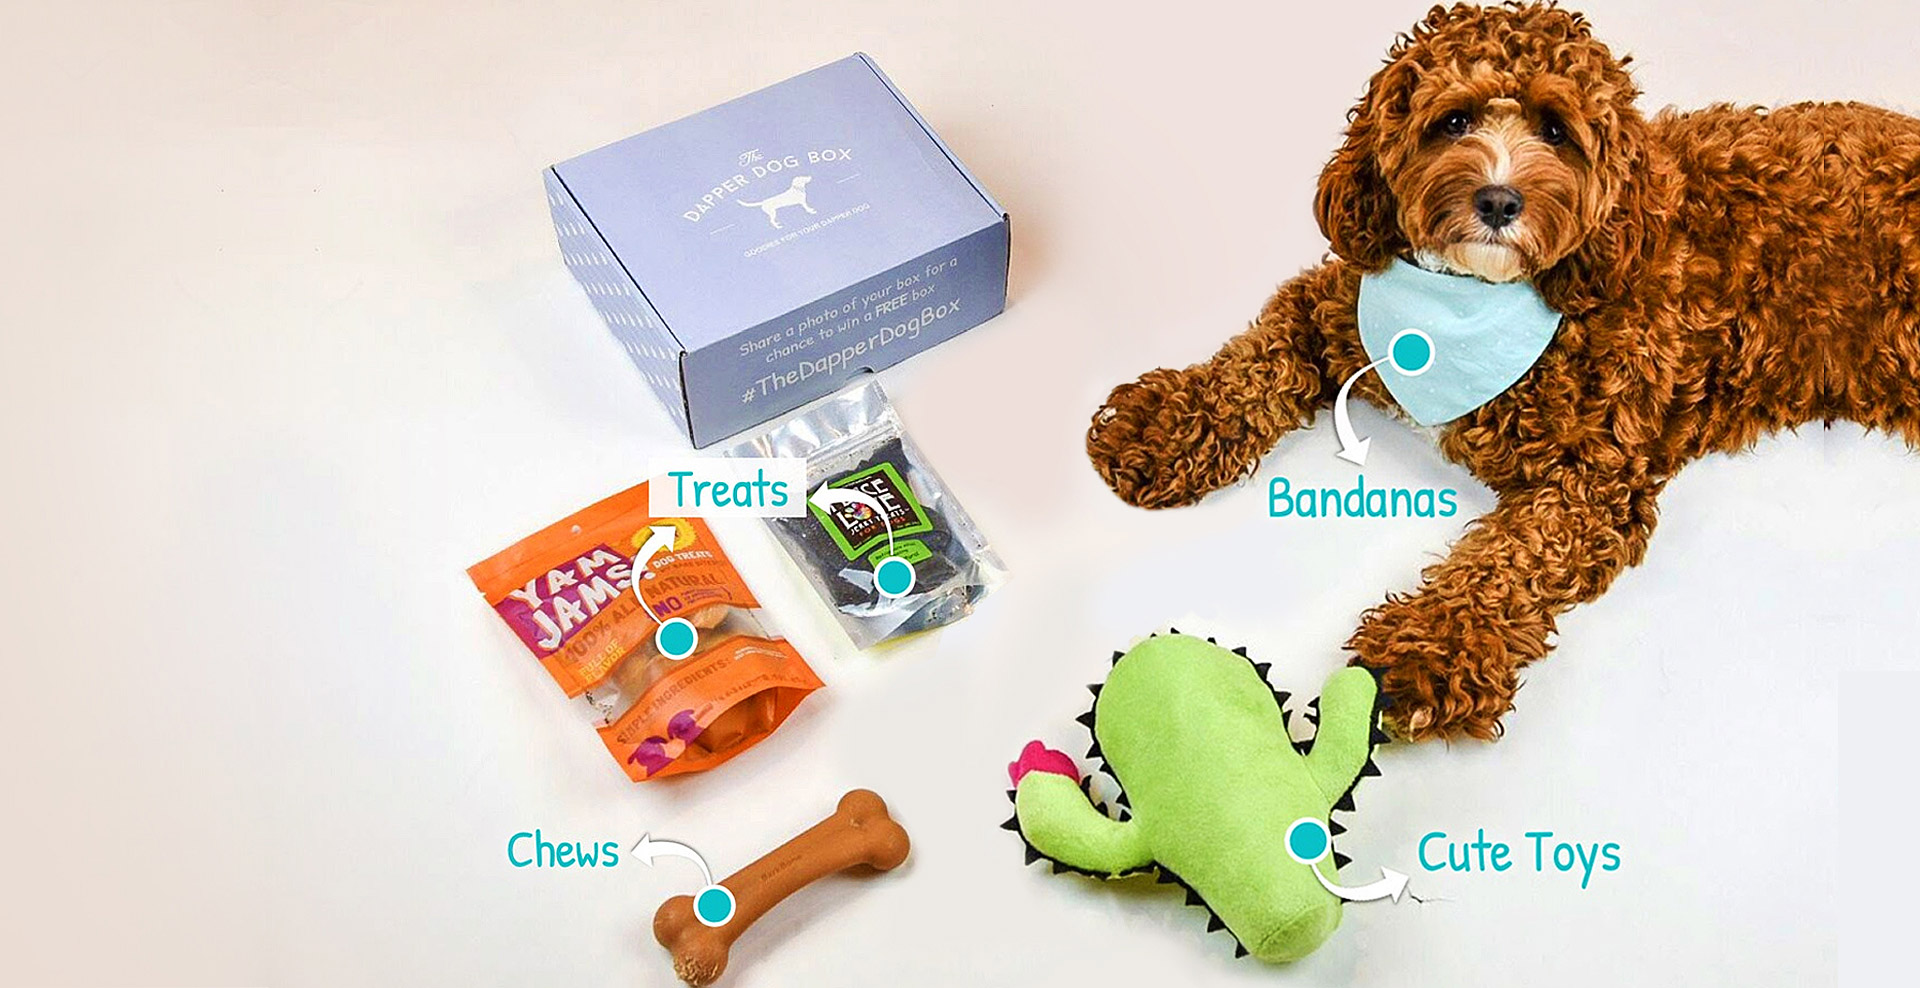 fluffy dog wearing bandana with dog subscription box of treats, chews, and cute toys